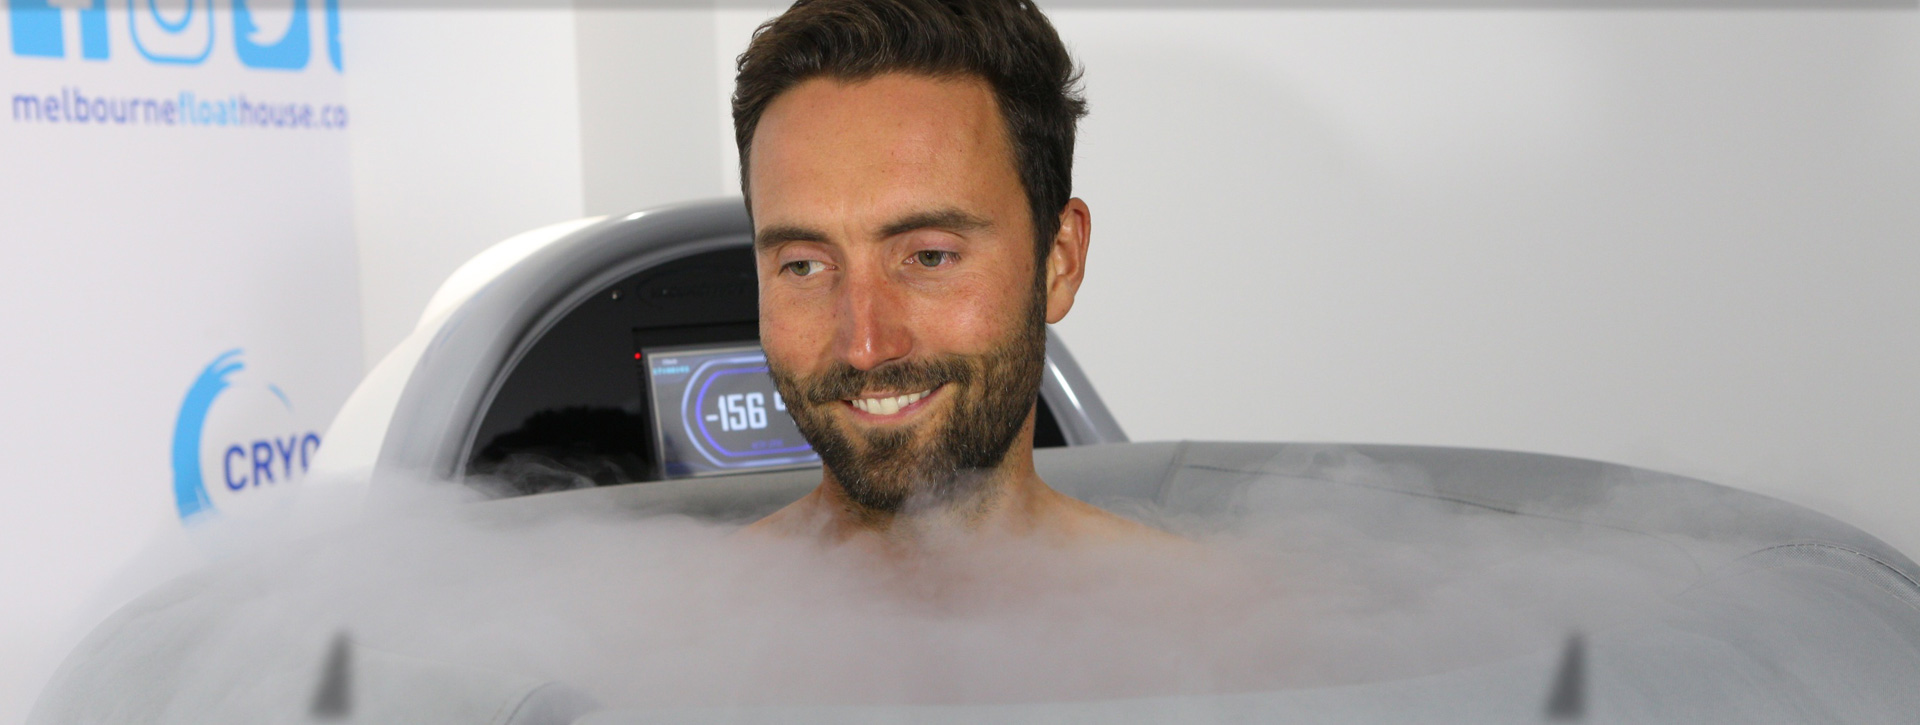 Cryogenic Chamber Therapy Locations in Melbourne